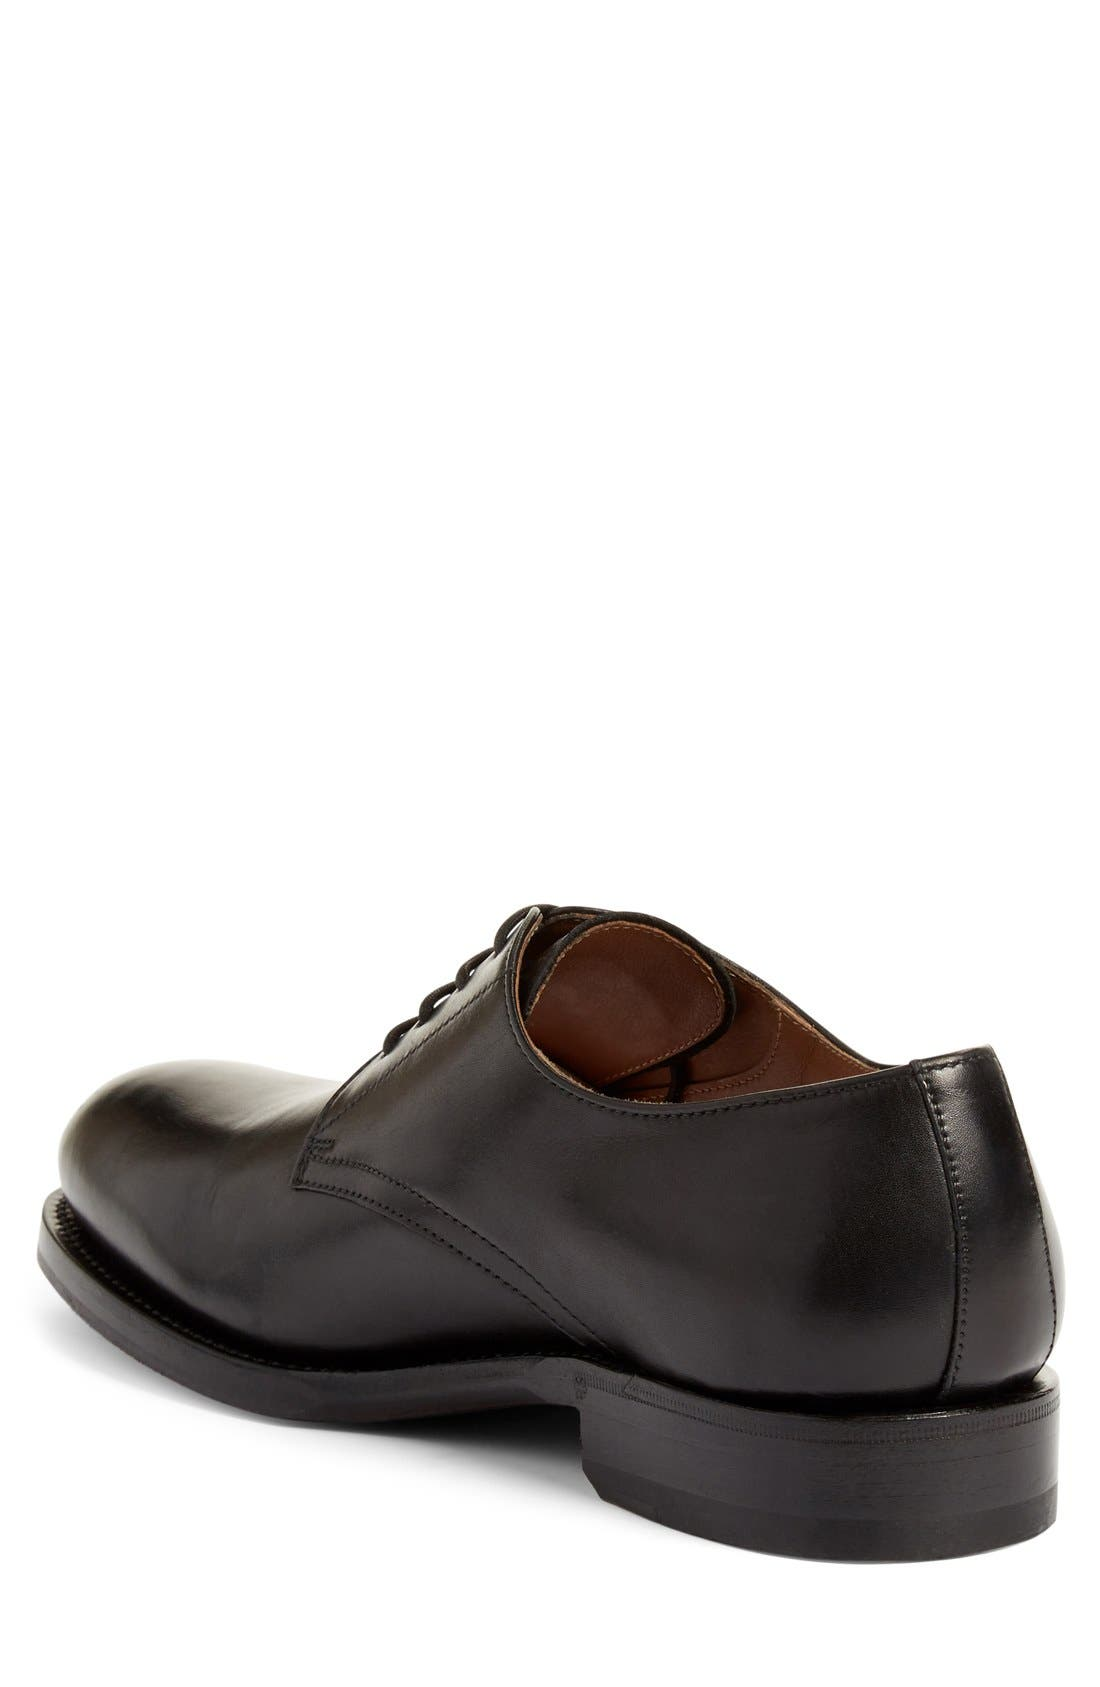 Alternate Image 2  - Aquatalia 'Vance' Plain Toe Derby (Men)